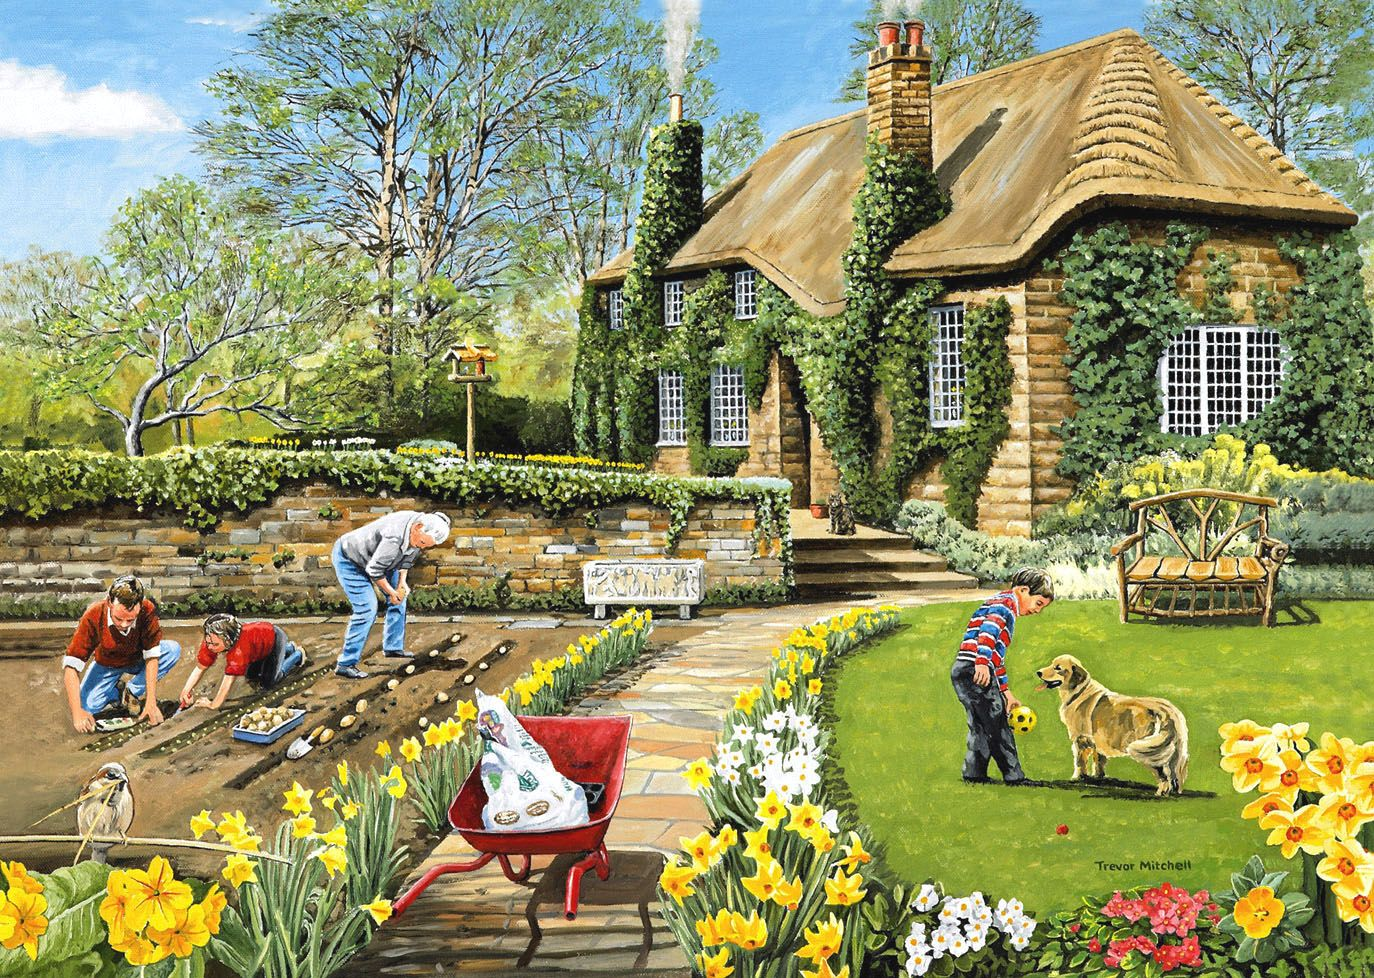 Jigsaw puzzles direct huge range jigsaws jigsaw Based in the